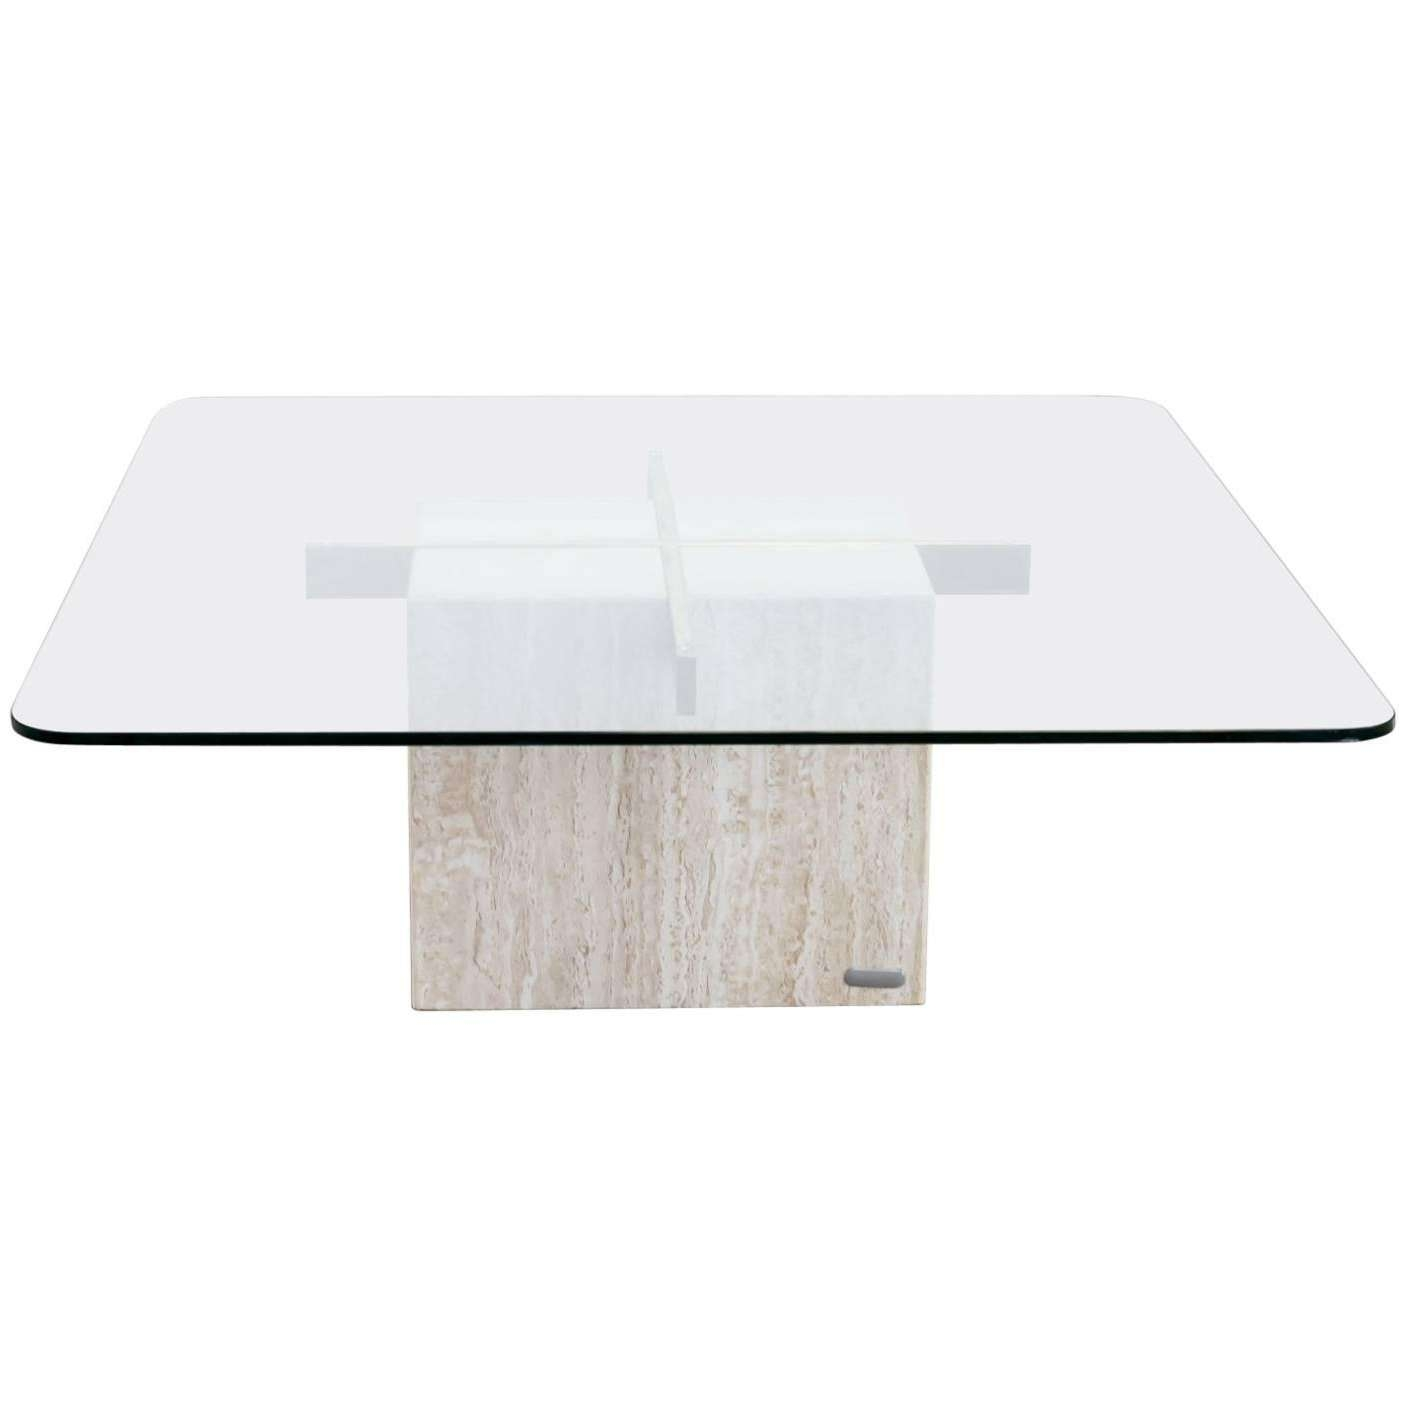 Preferred Marble Base Glass Top Coffee Table Throughout 1970S Artedi Italian Travertine Base, Glass Top Coffee Table For (View 11 of 20)